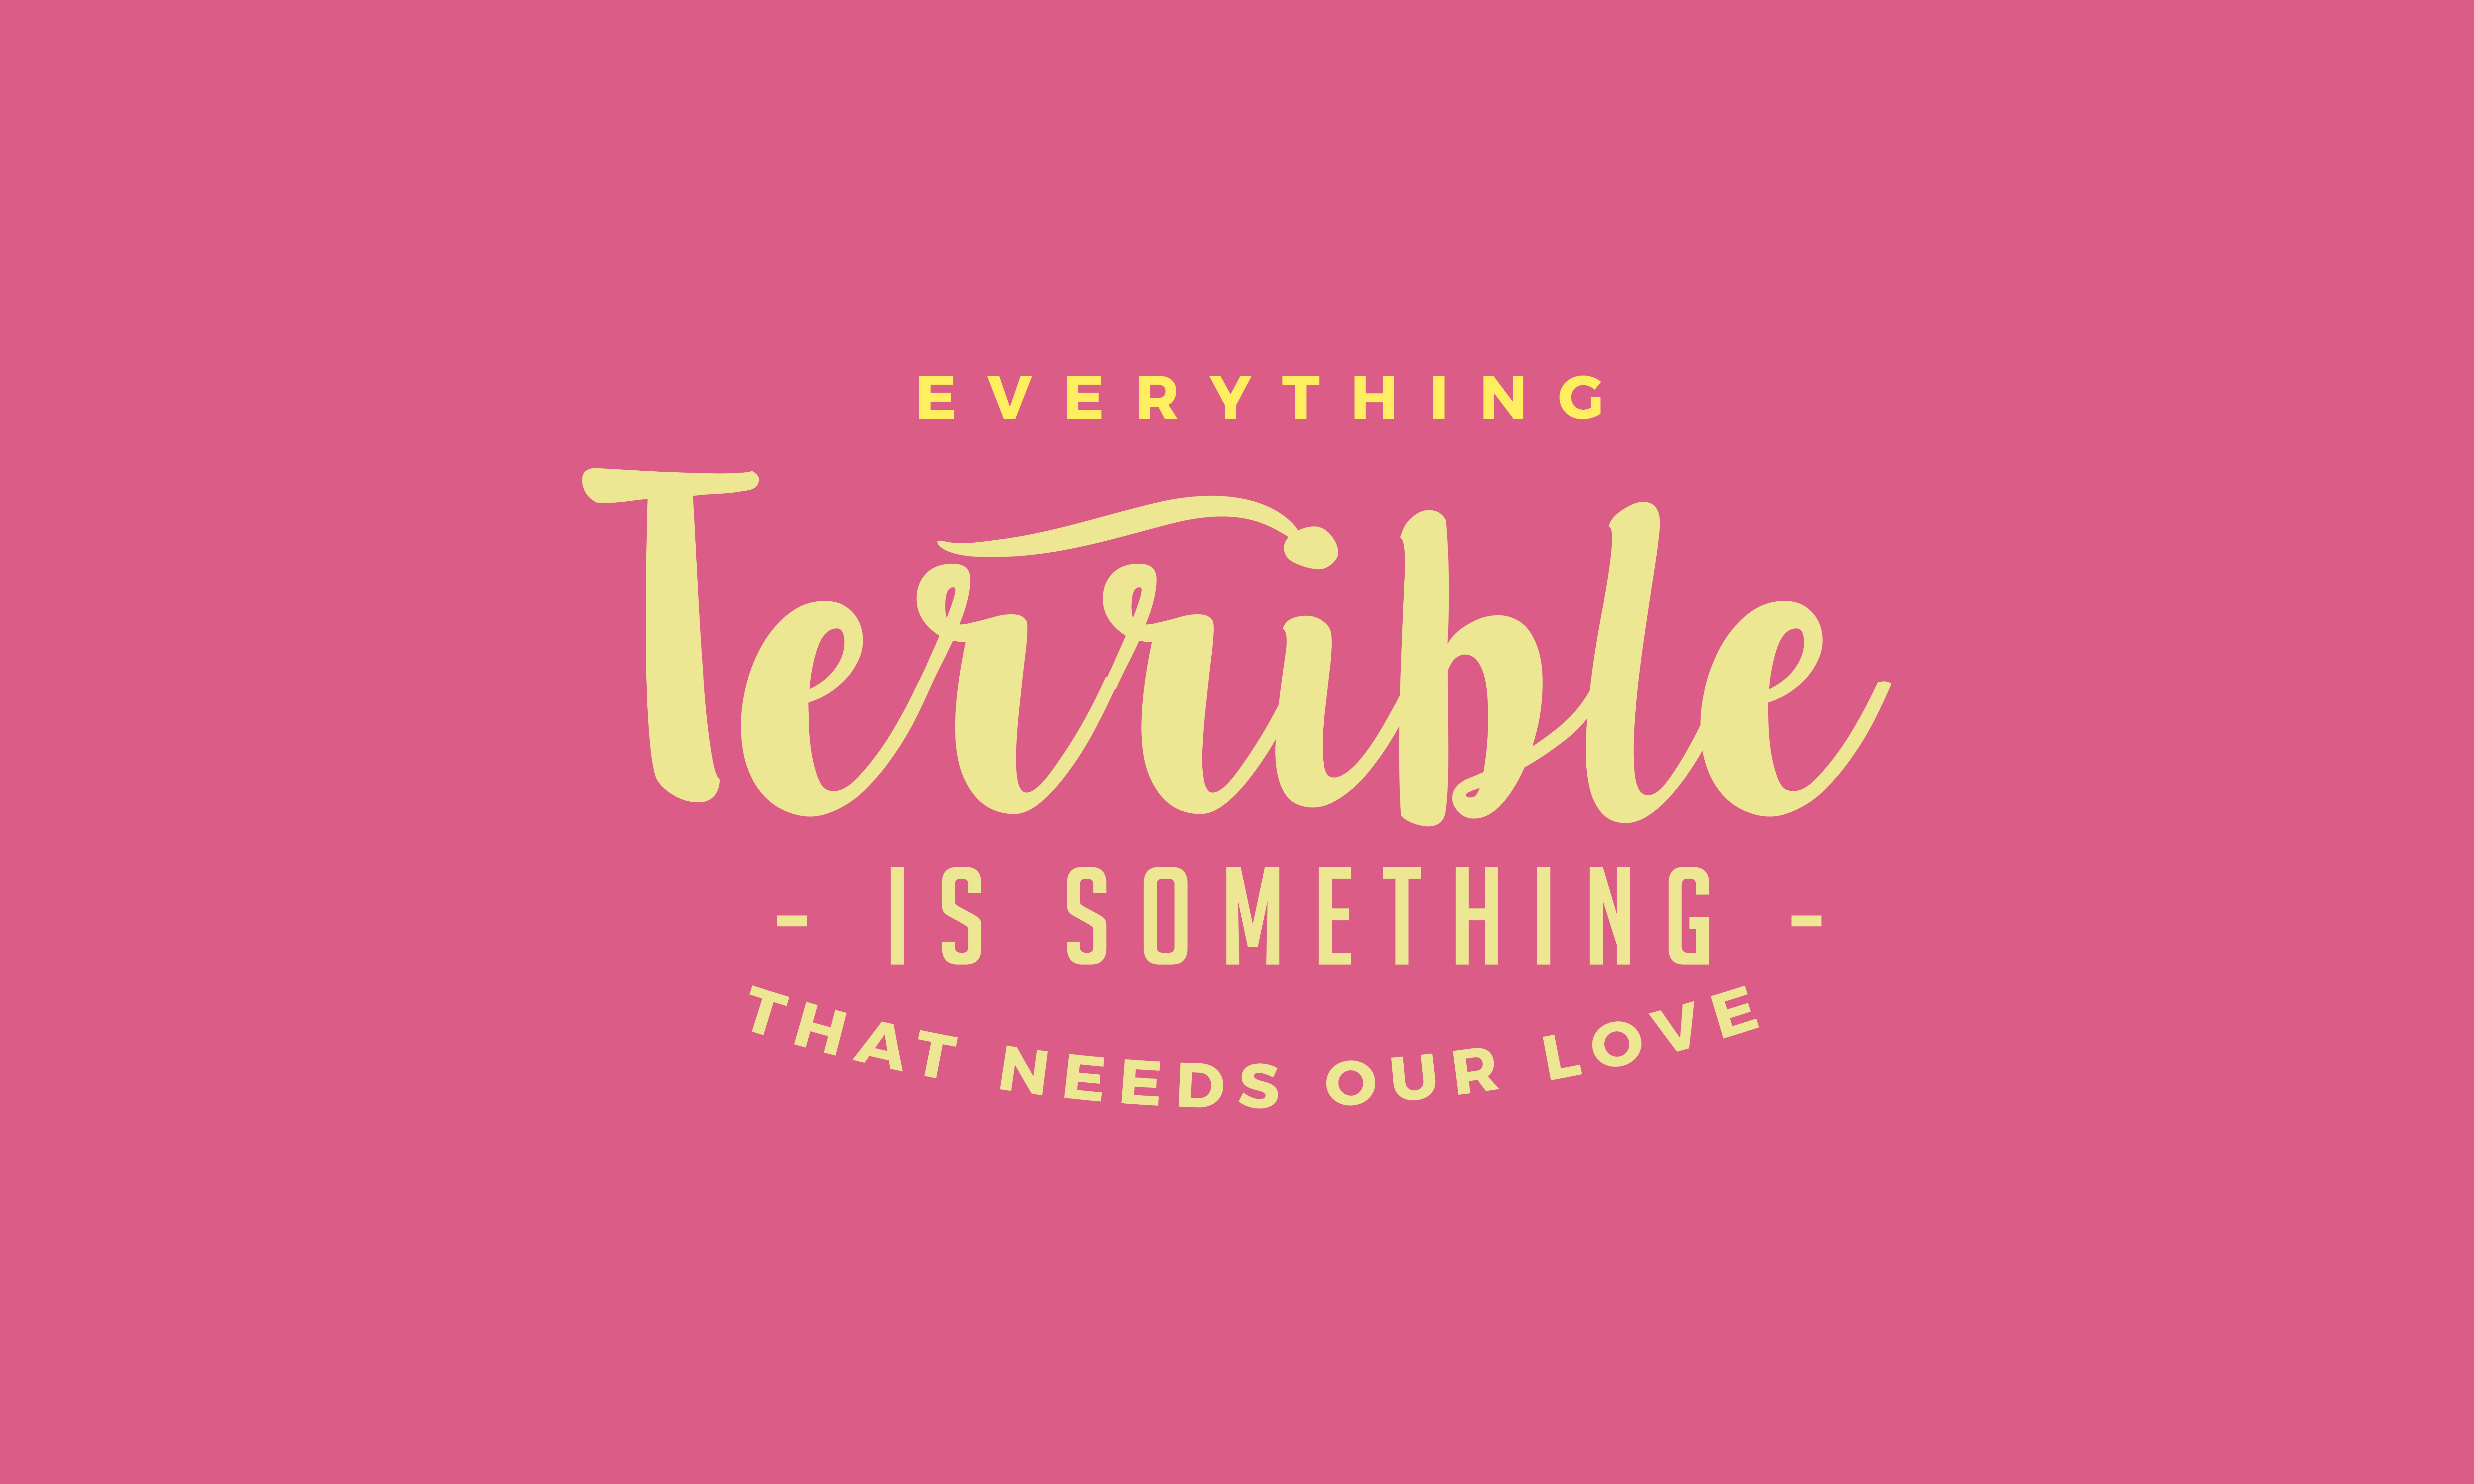 Download Free Everything Terrible Is Something Graphic By Baraeiji Creative for Cricut Explore, Silhouette and other cutting machines.